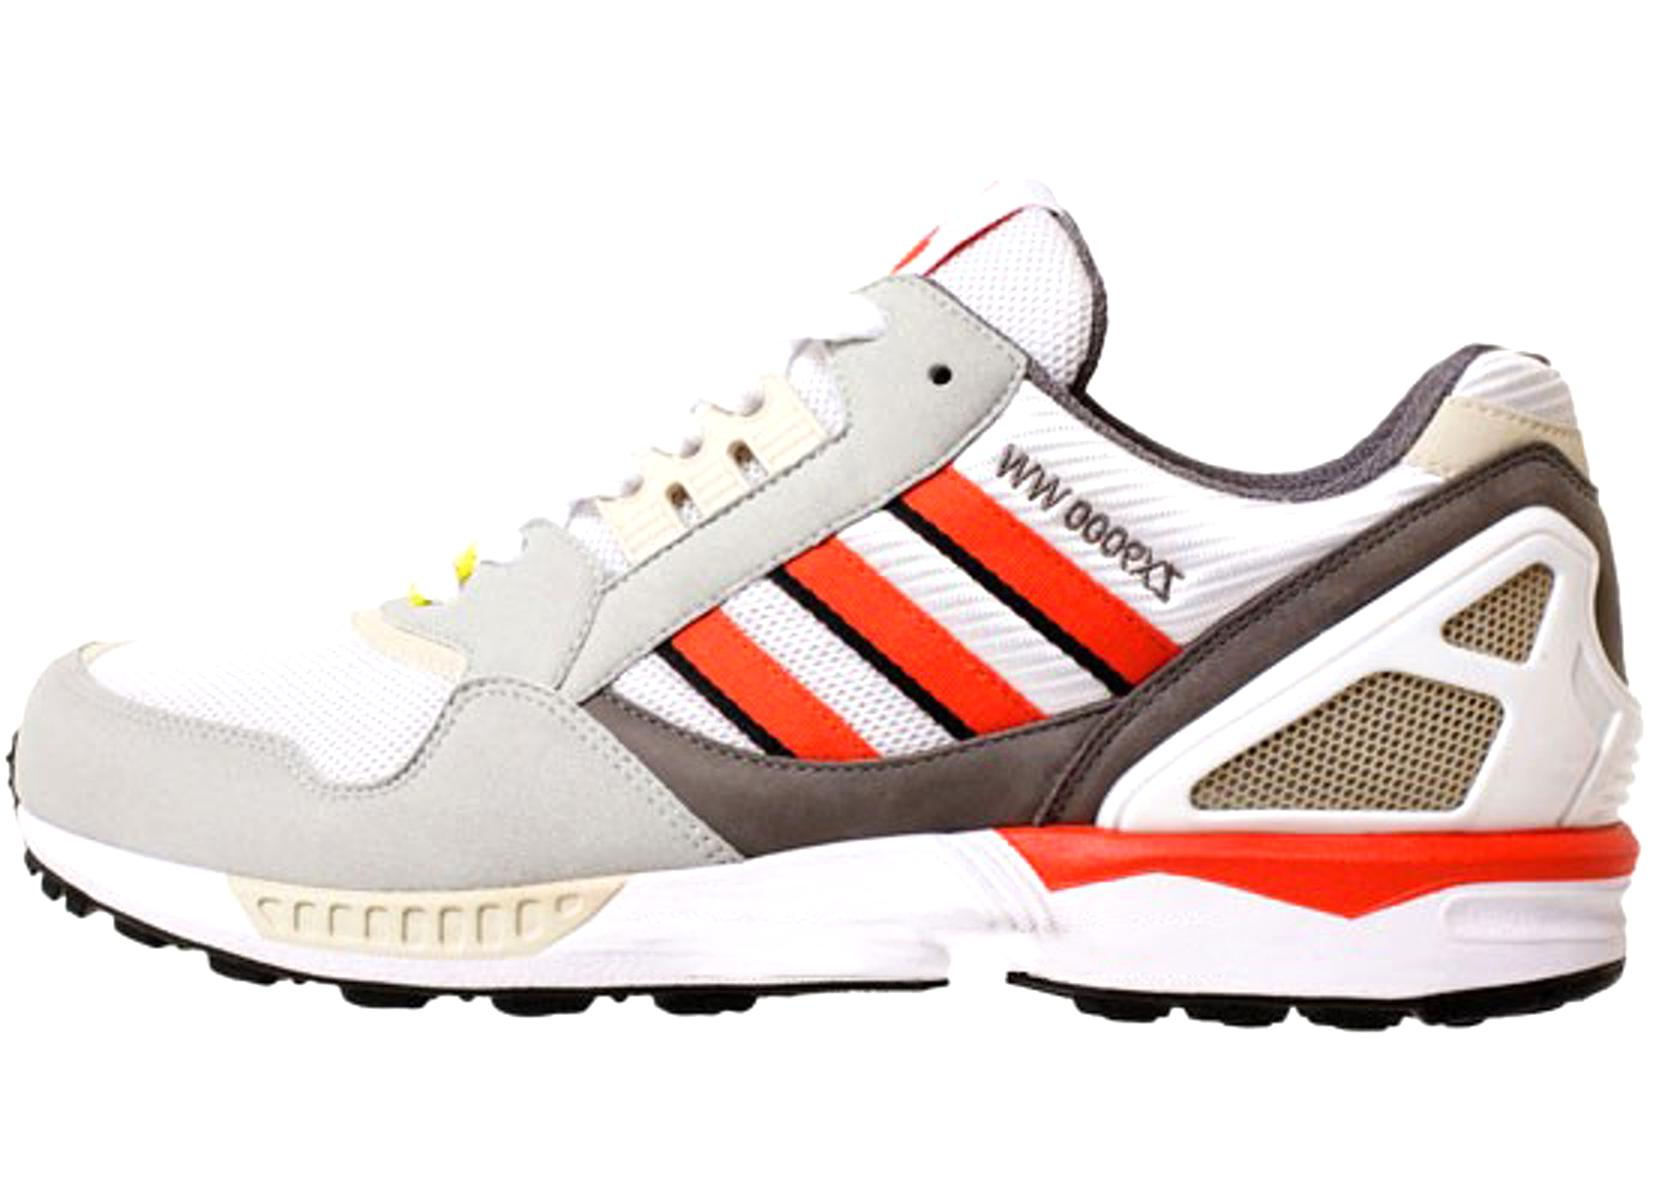 adidas zx 9000 d'occasion